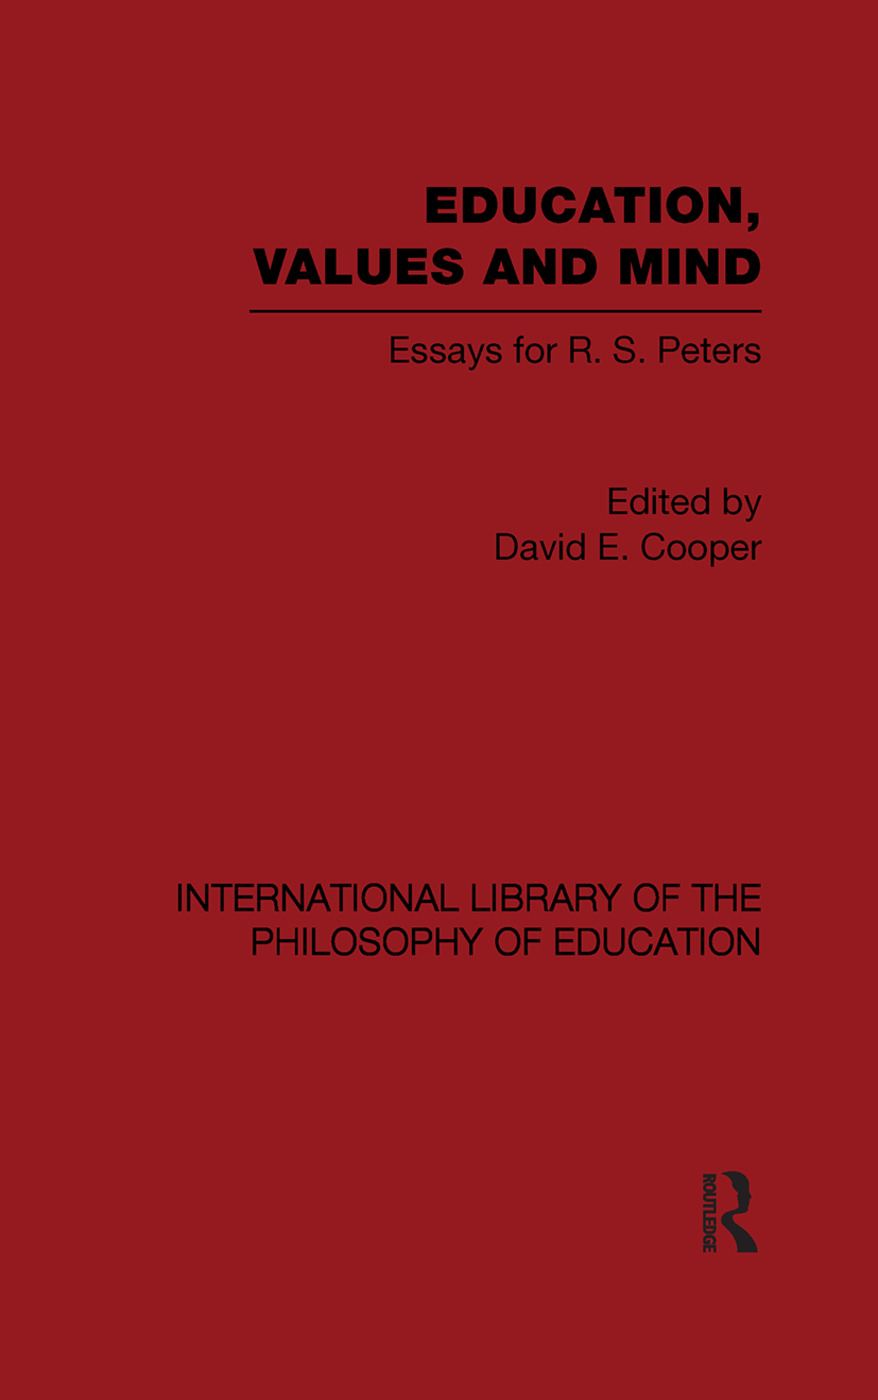 Education, Values and Mind (International Library of the Philosophy of Education Volume 6): Essays for R. S. Peters (Paperback) book cover